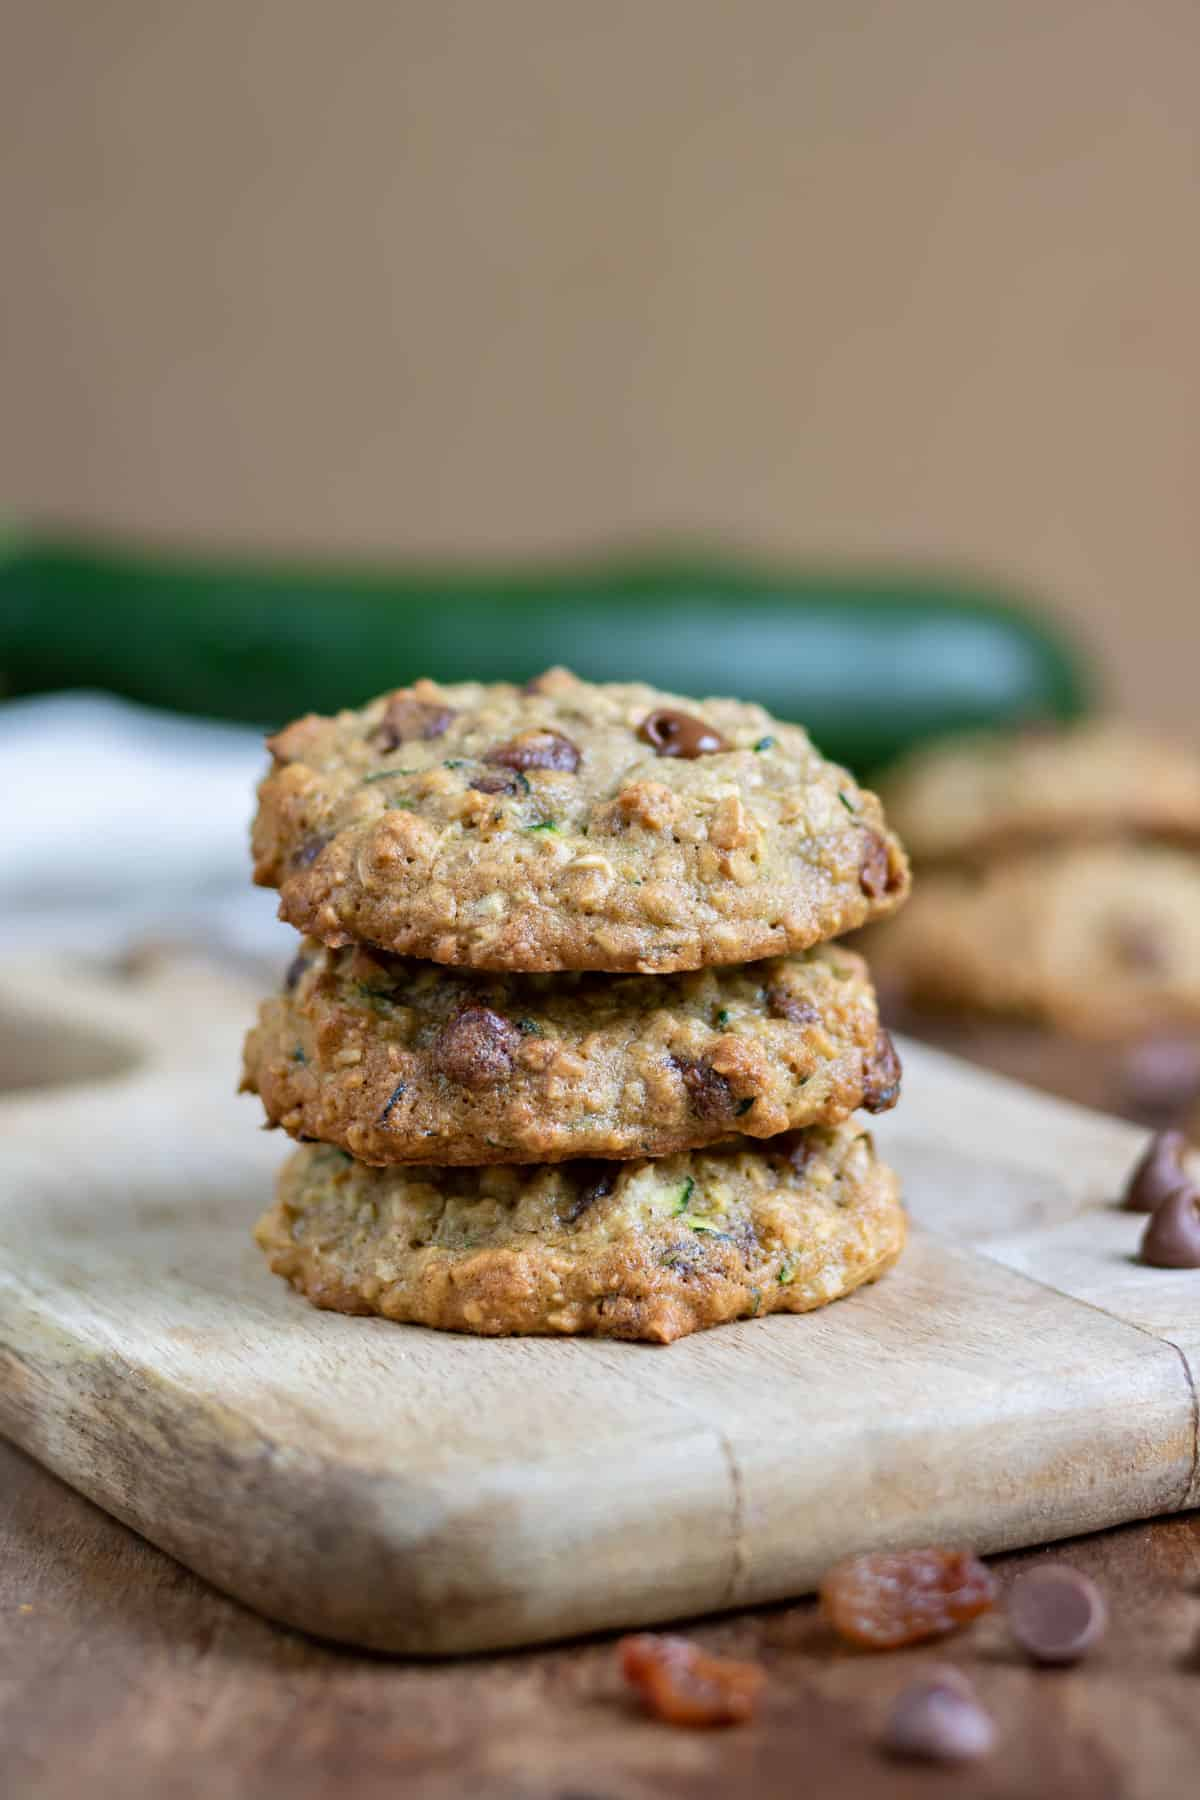 Stack of cookies on a wooden board.